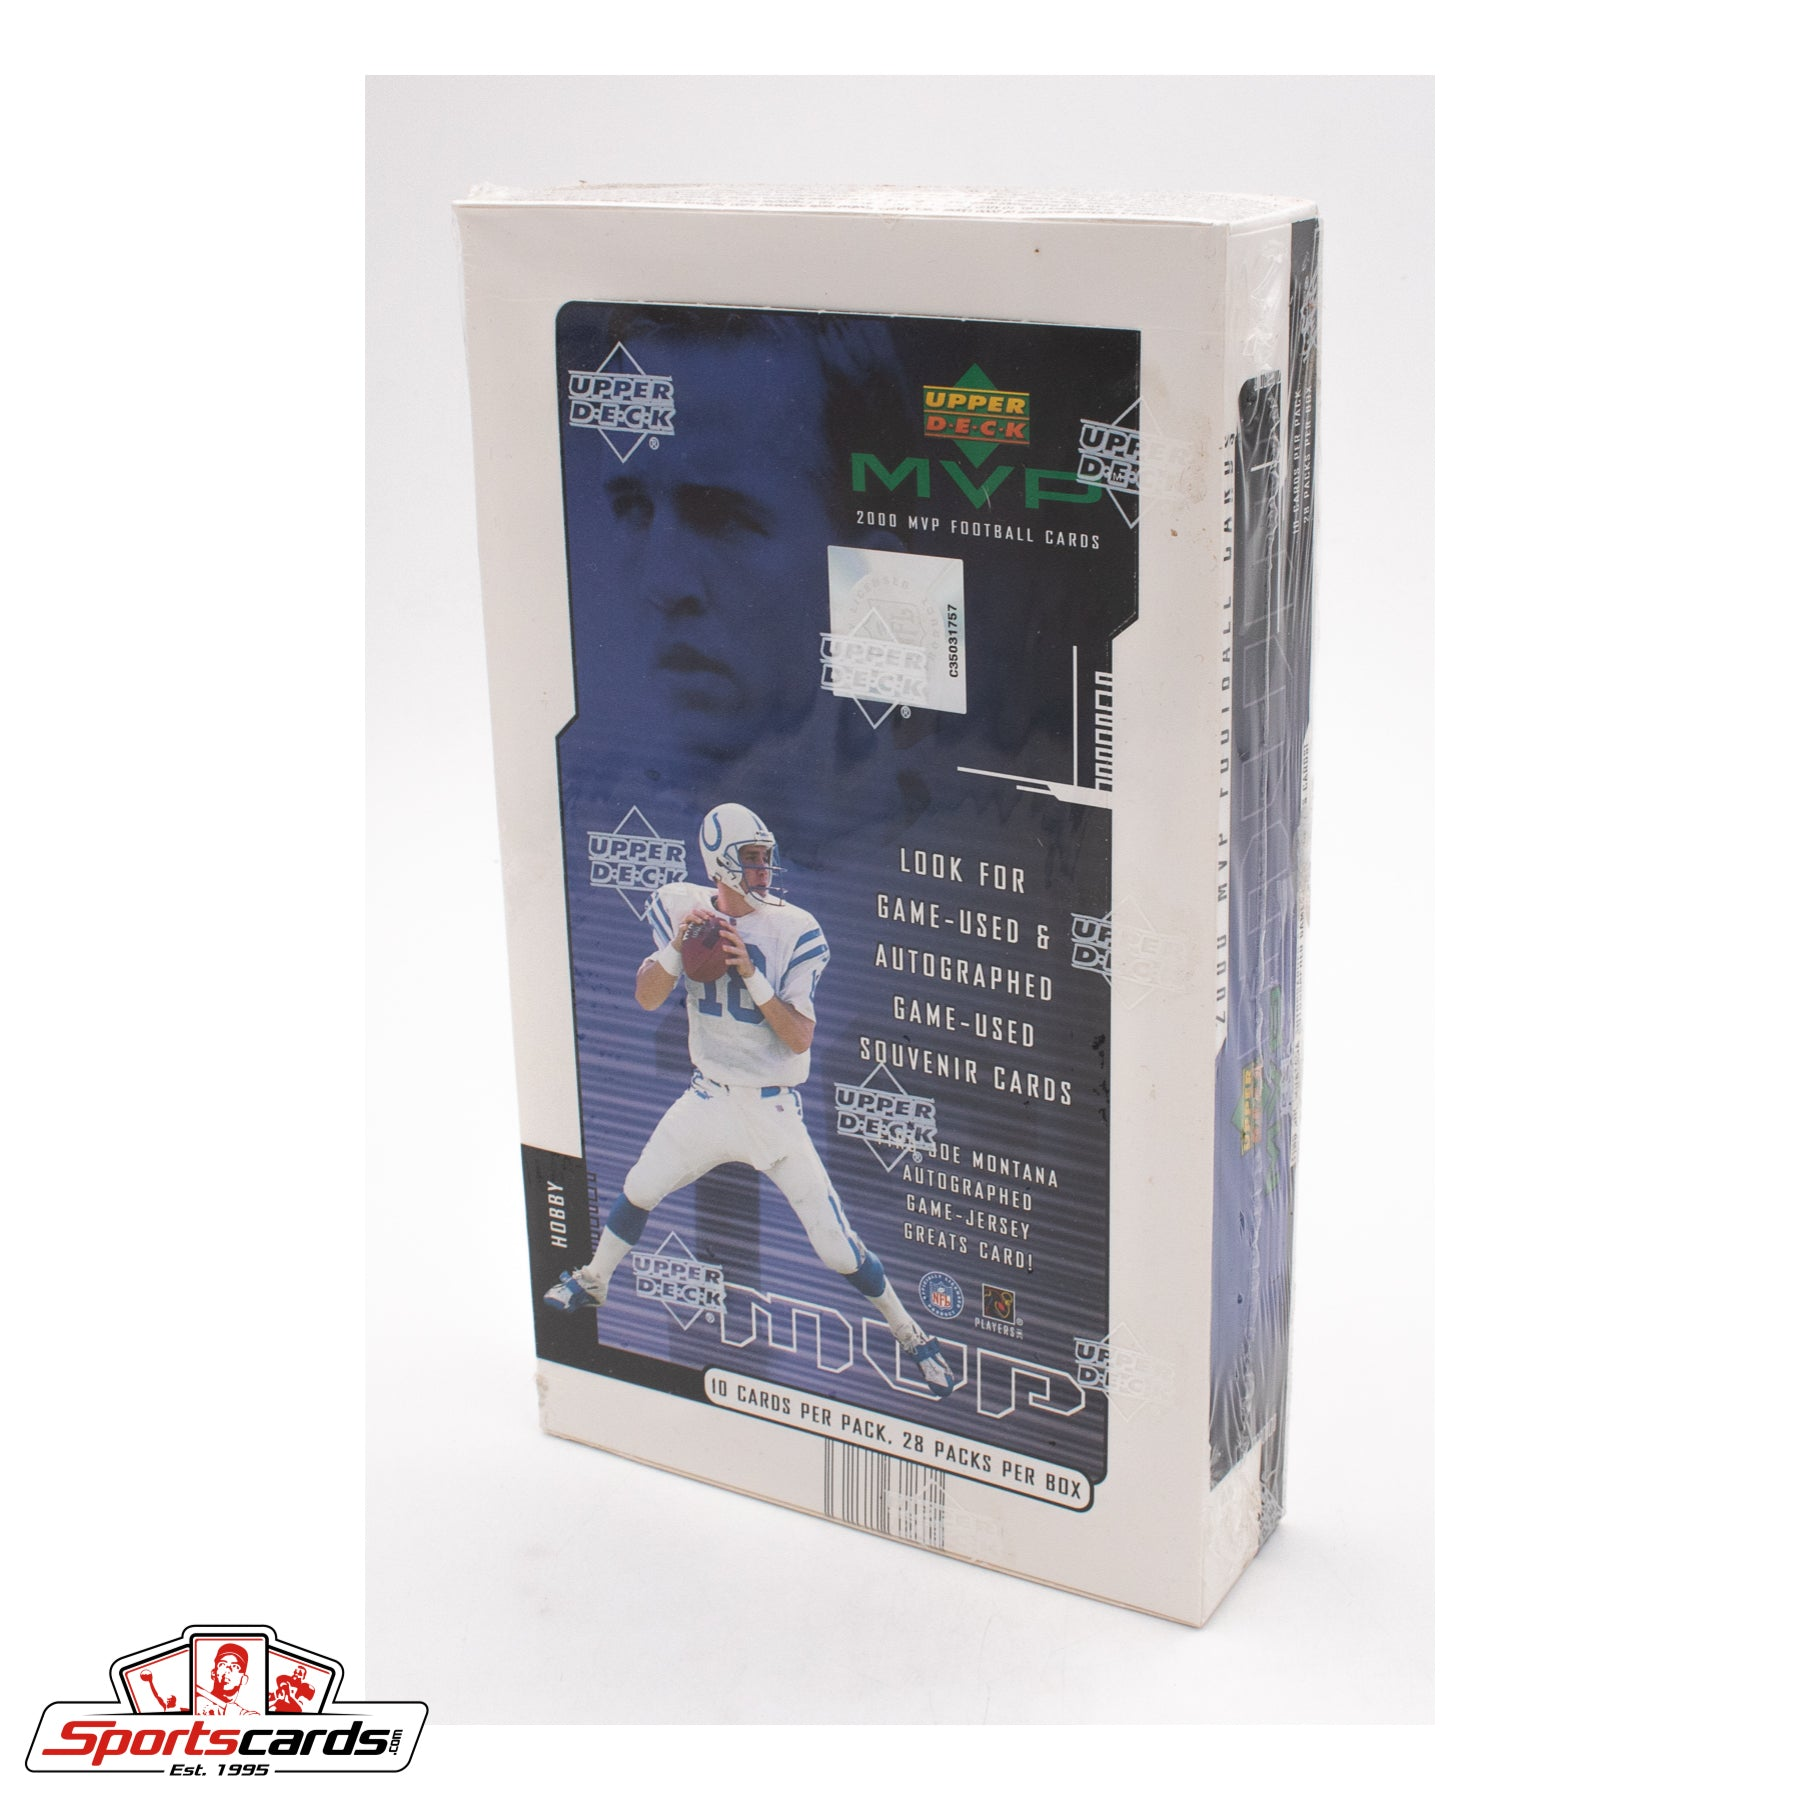 2000 Upper Deck MVP Football Cards Hobby Factory Sealed Box